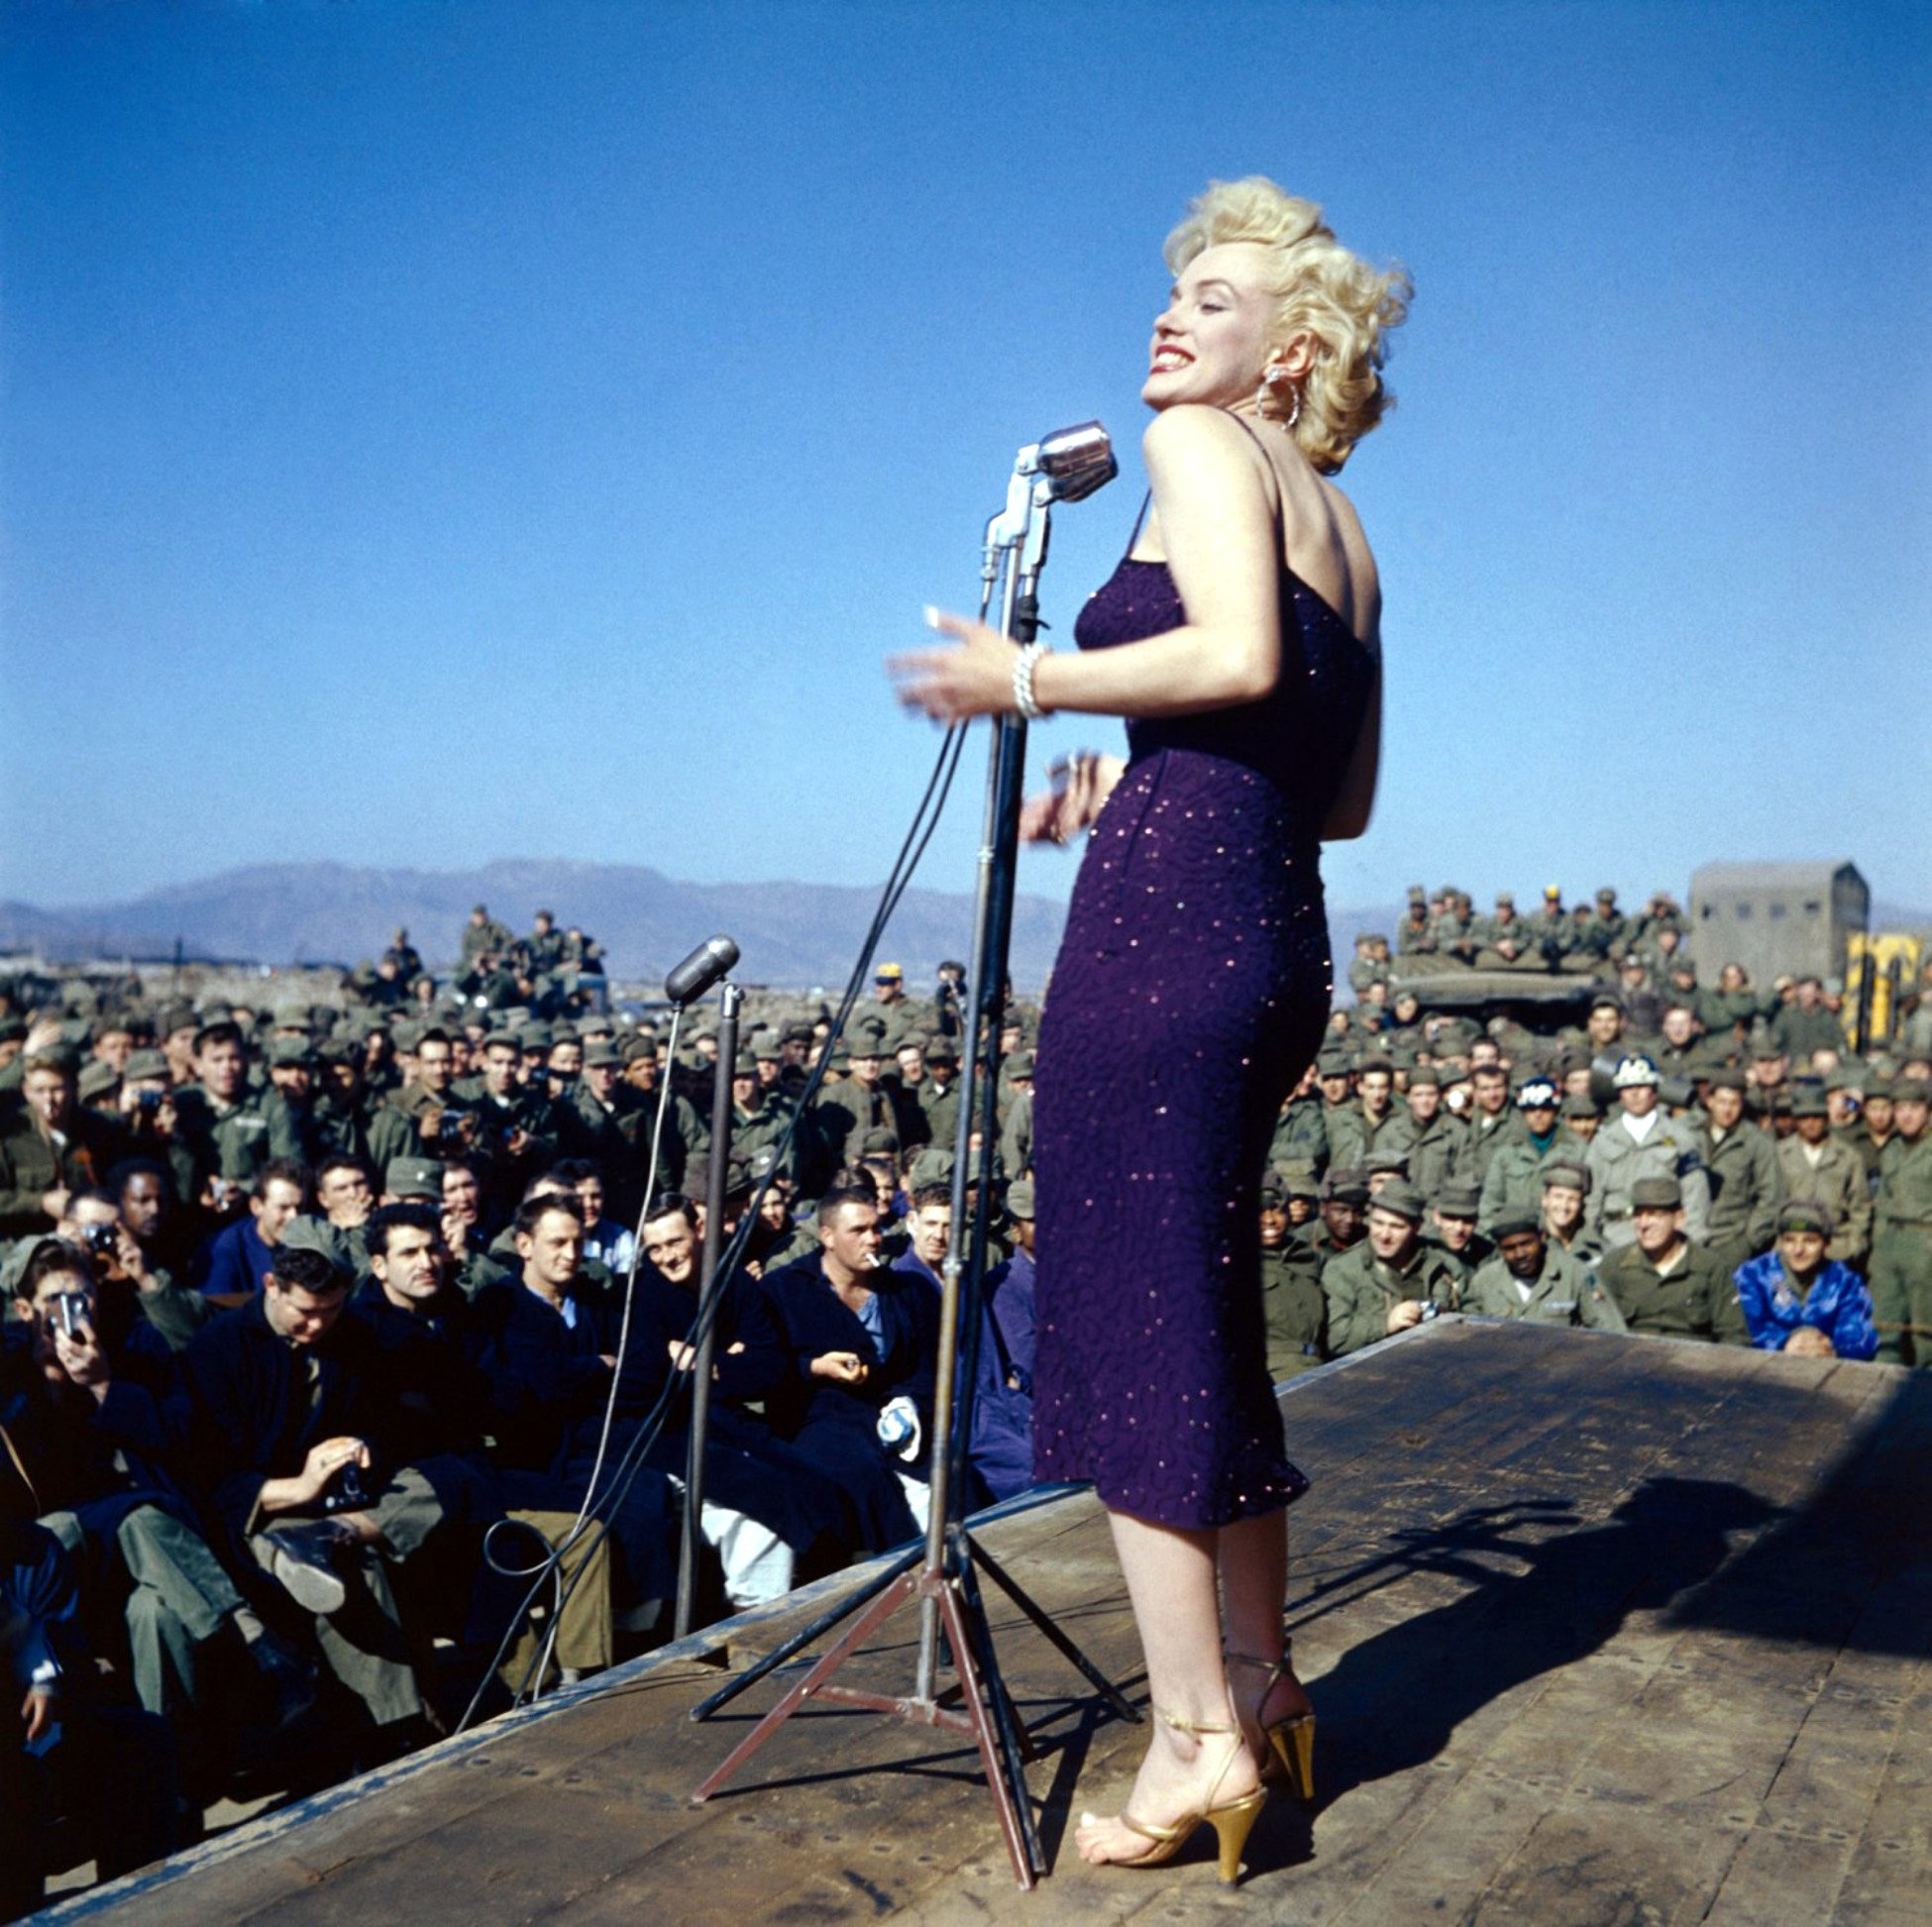 Laminated Poster Marilyn Monroe Performing For The Troops Color Uso Us Military S Poster Print 24 x 36